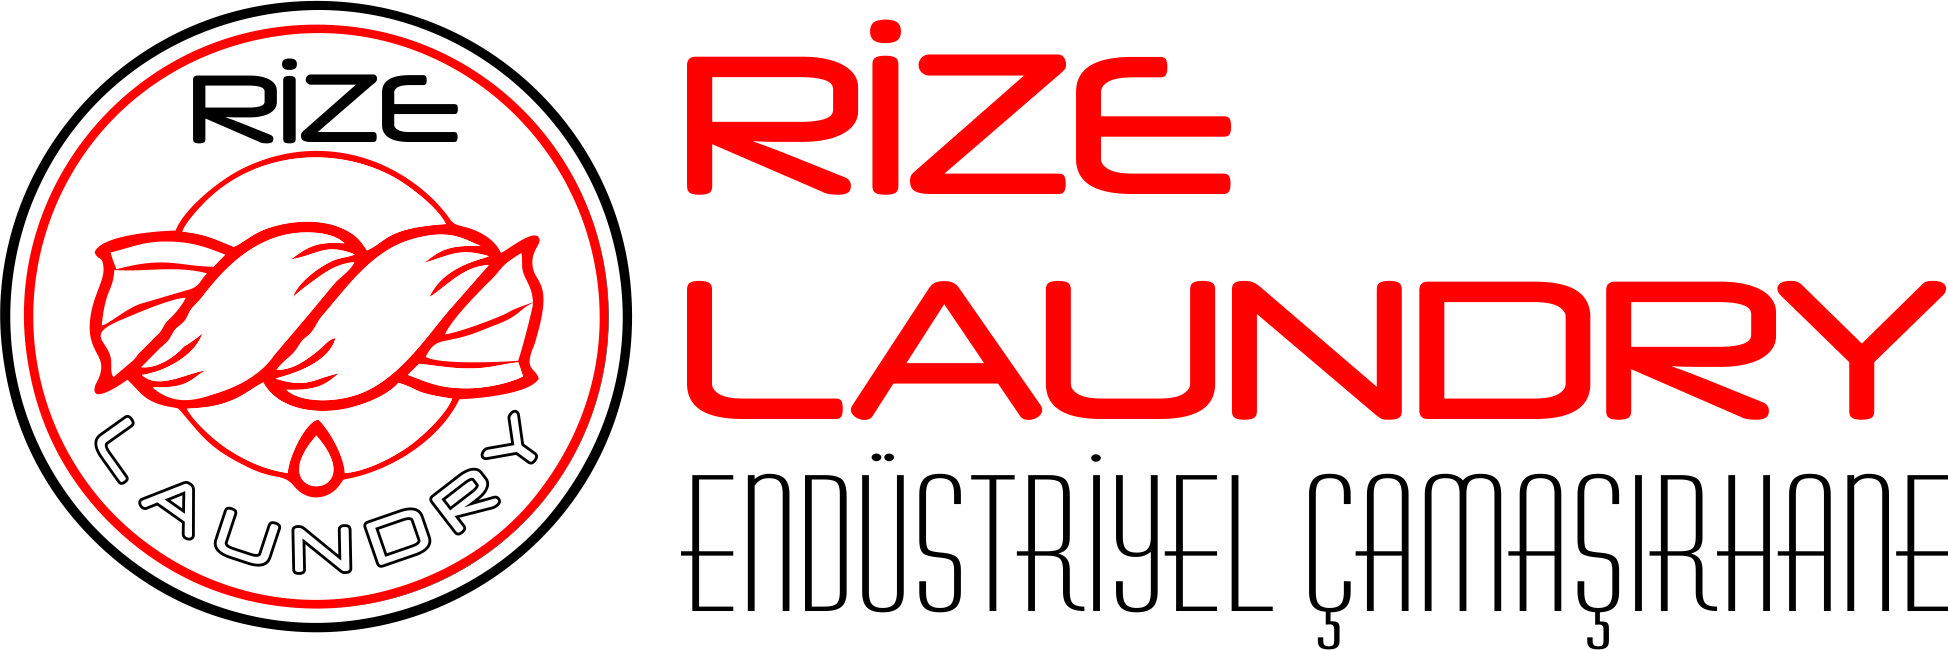 Rize Laundry